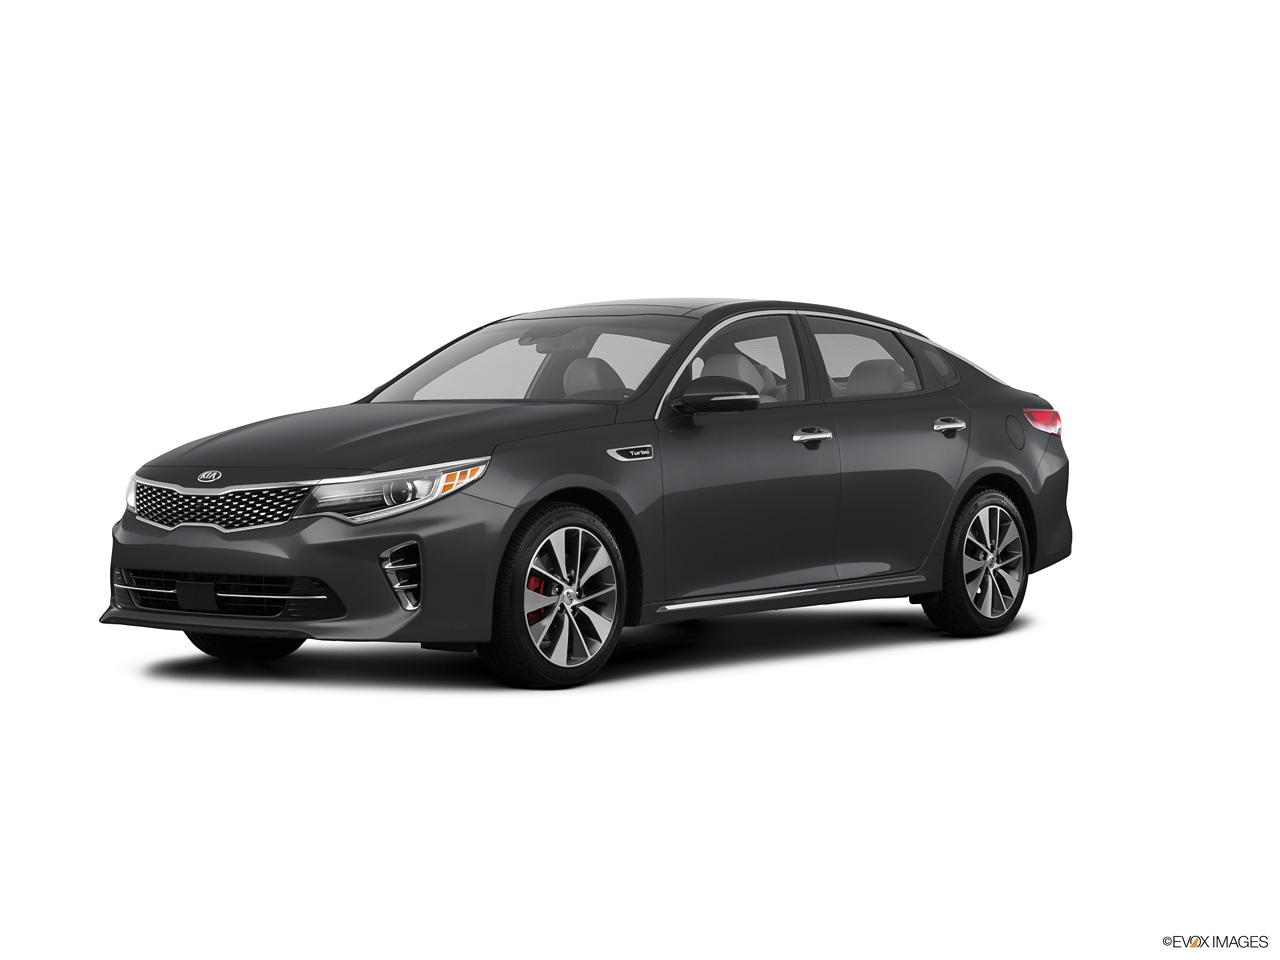 kia optima 2016 2 0l turbo in uae new car prices specs reviews photos yallamotor. Black Bedroom Furniture Sets. Home Design Ideas